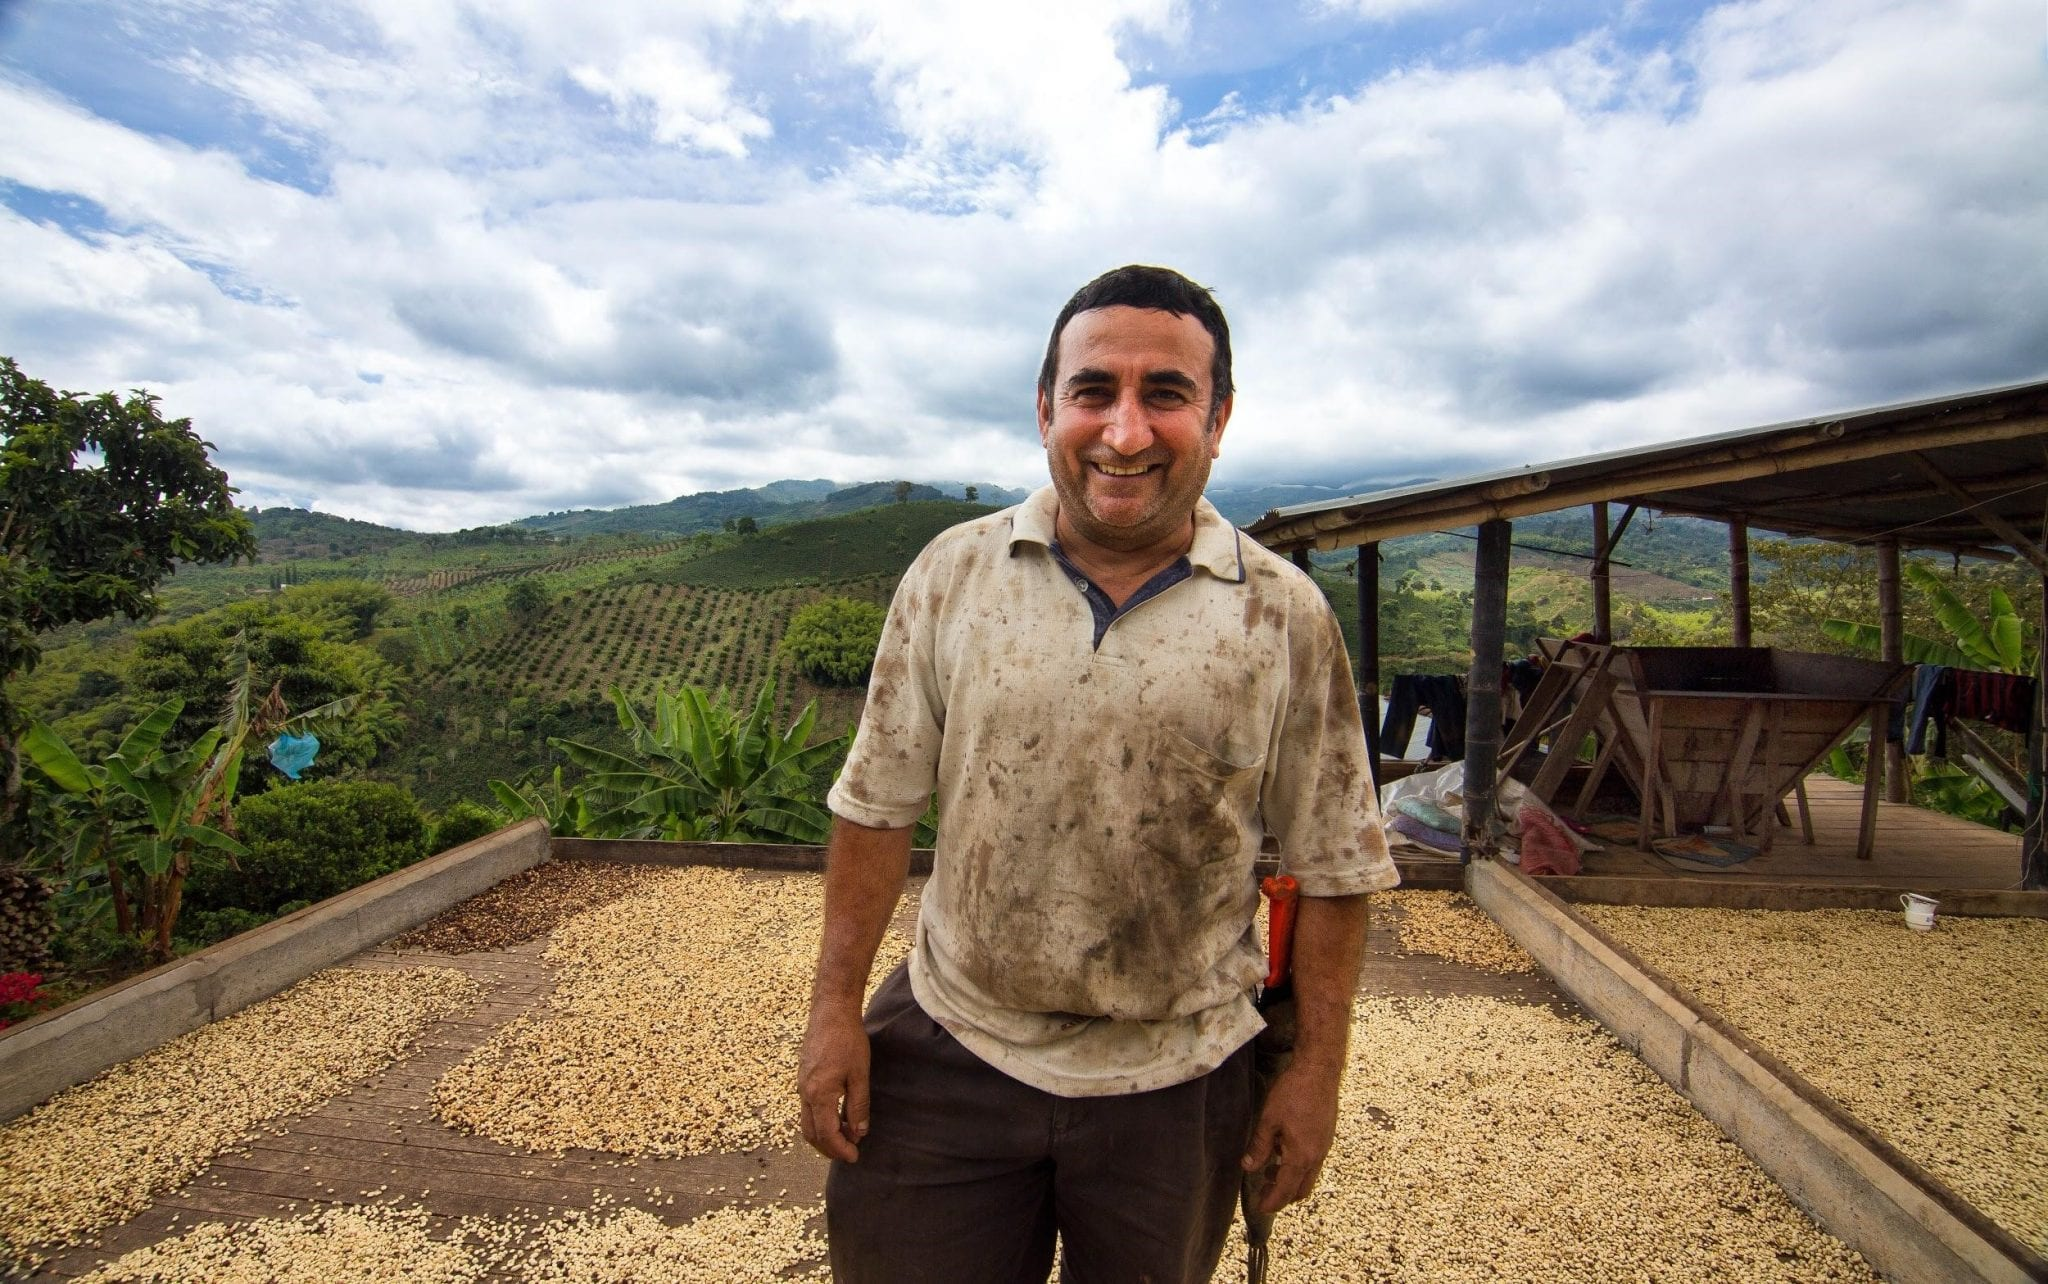 coffee producer smiles for the camara in his farm